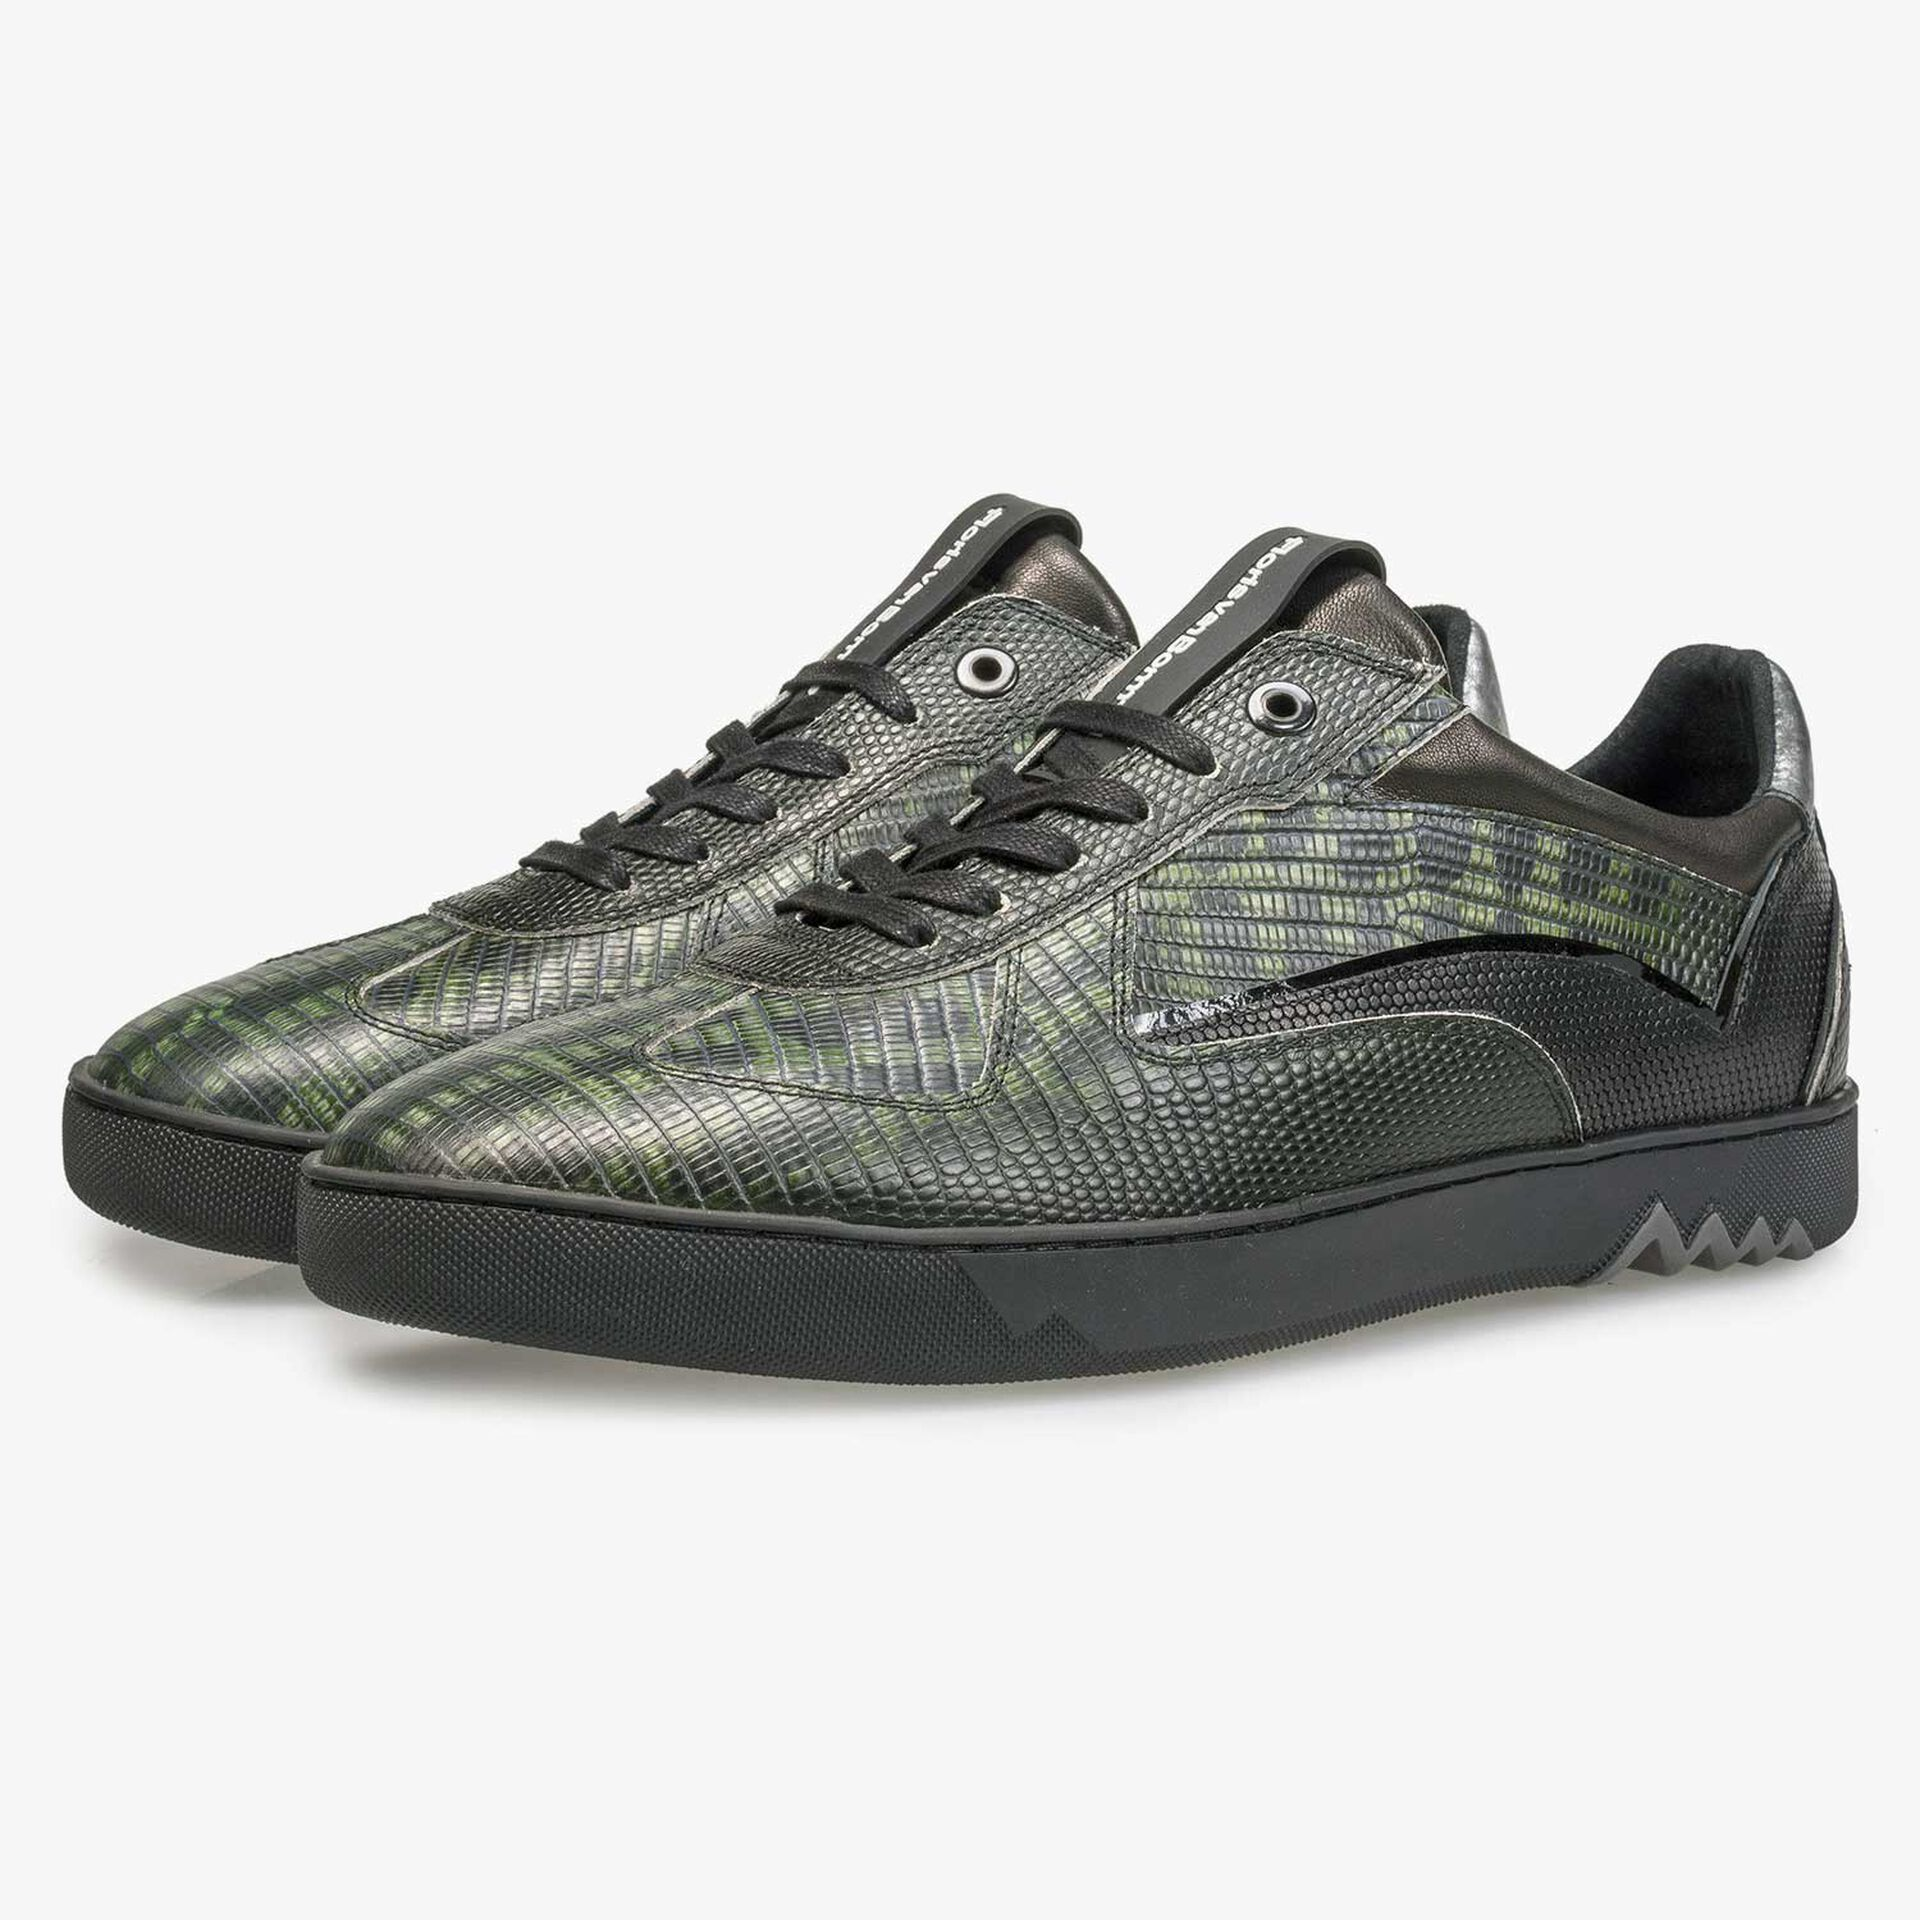 Sneaker with a lizard relief pattern